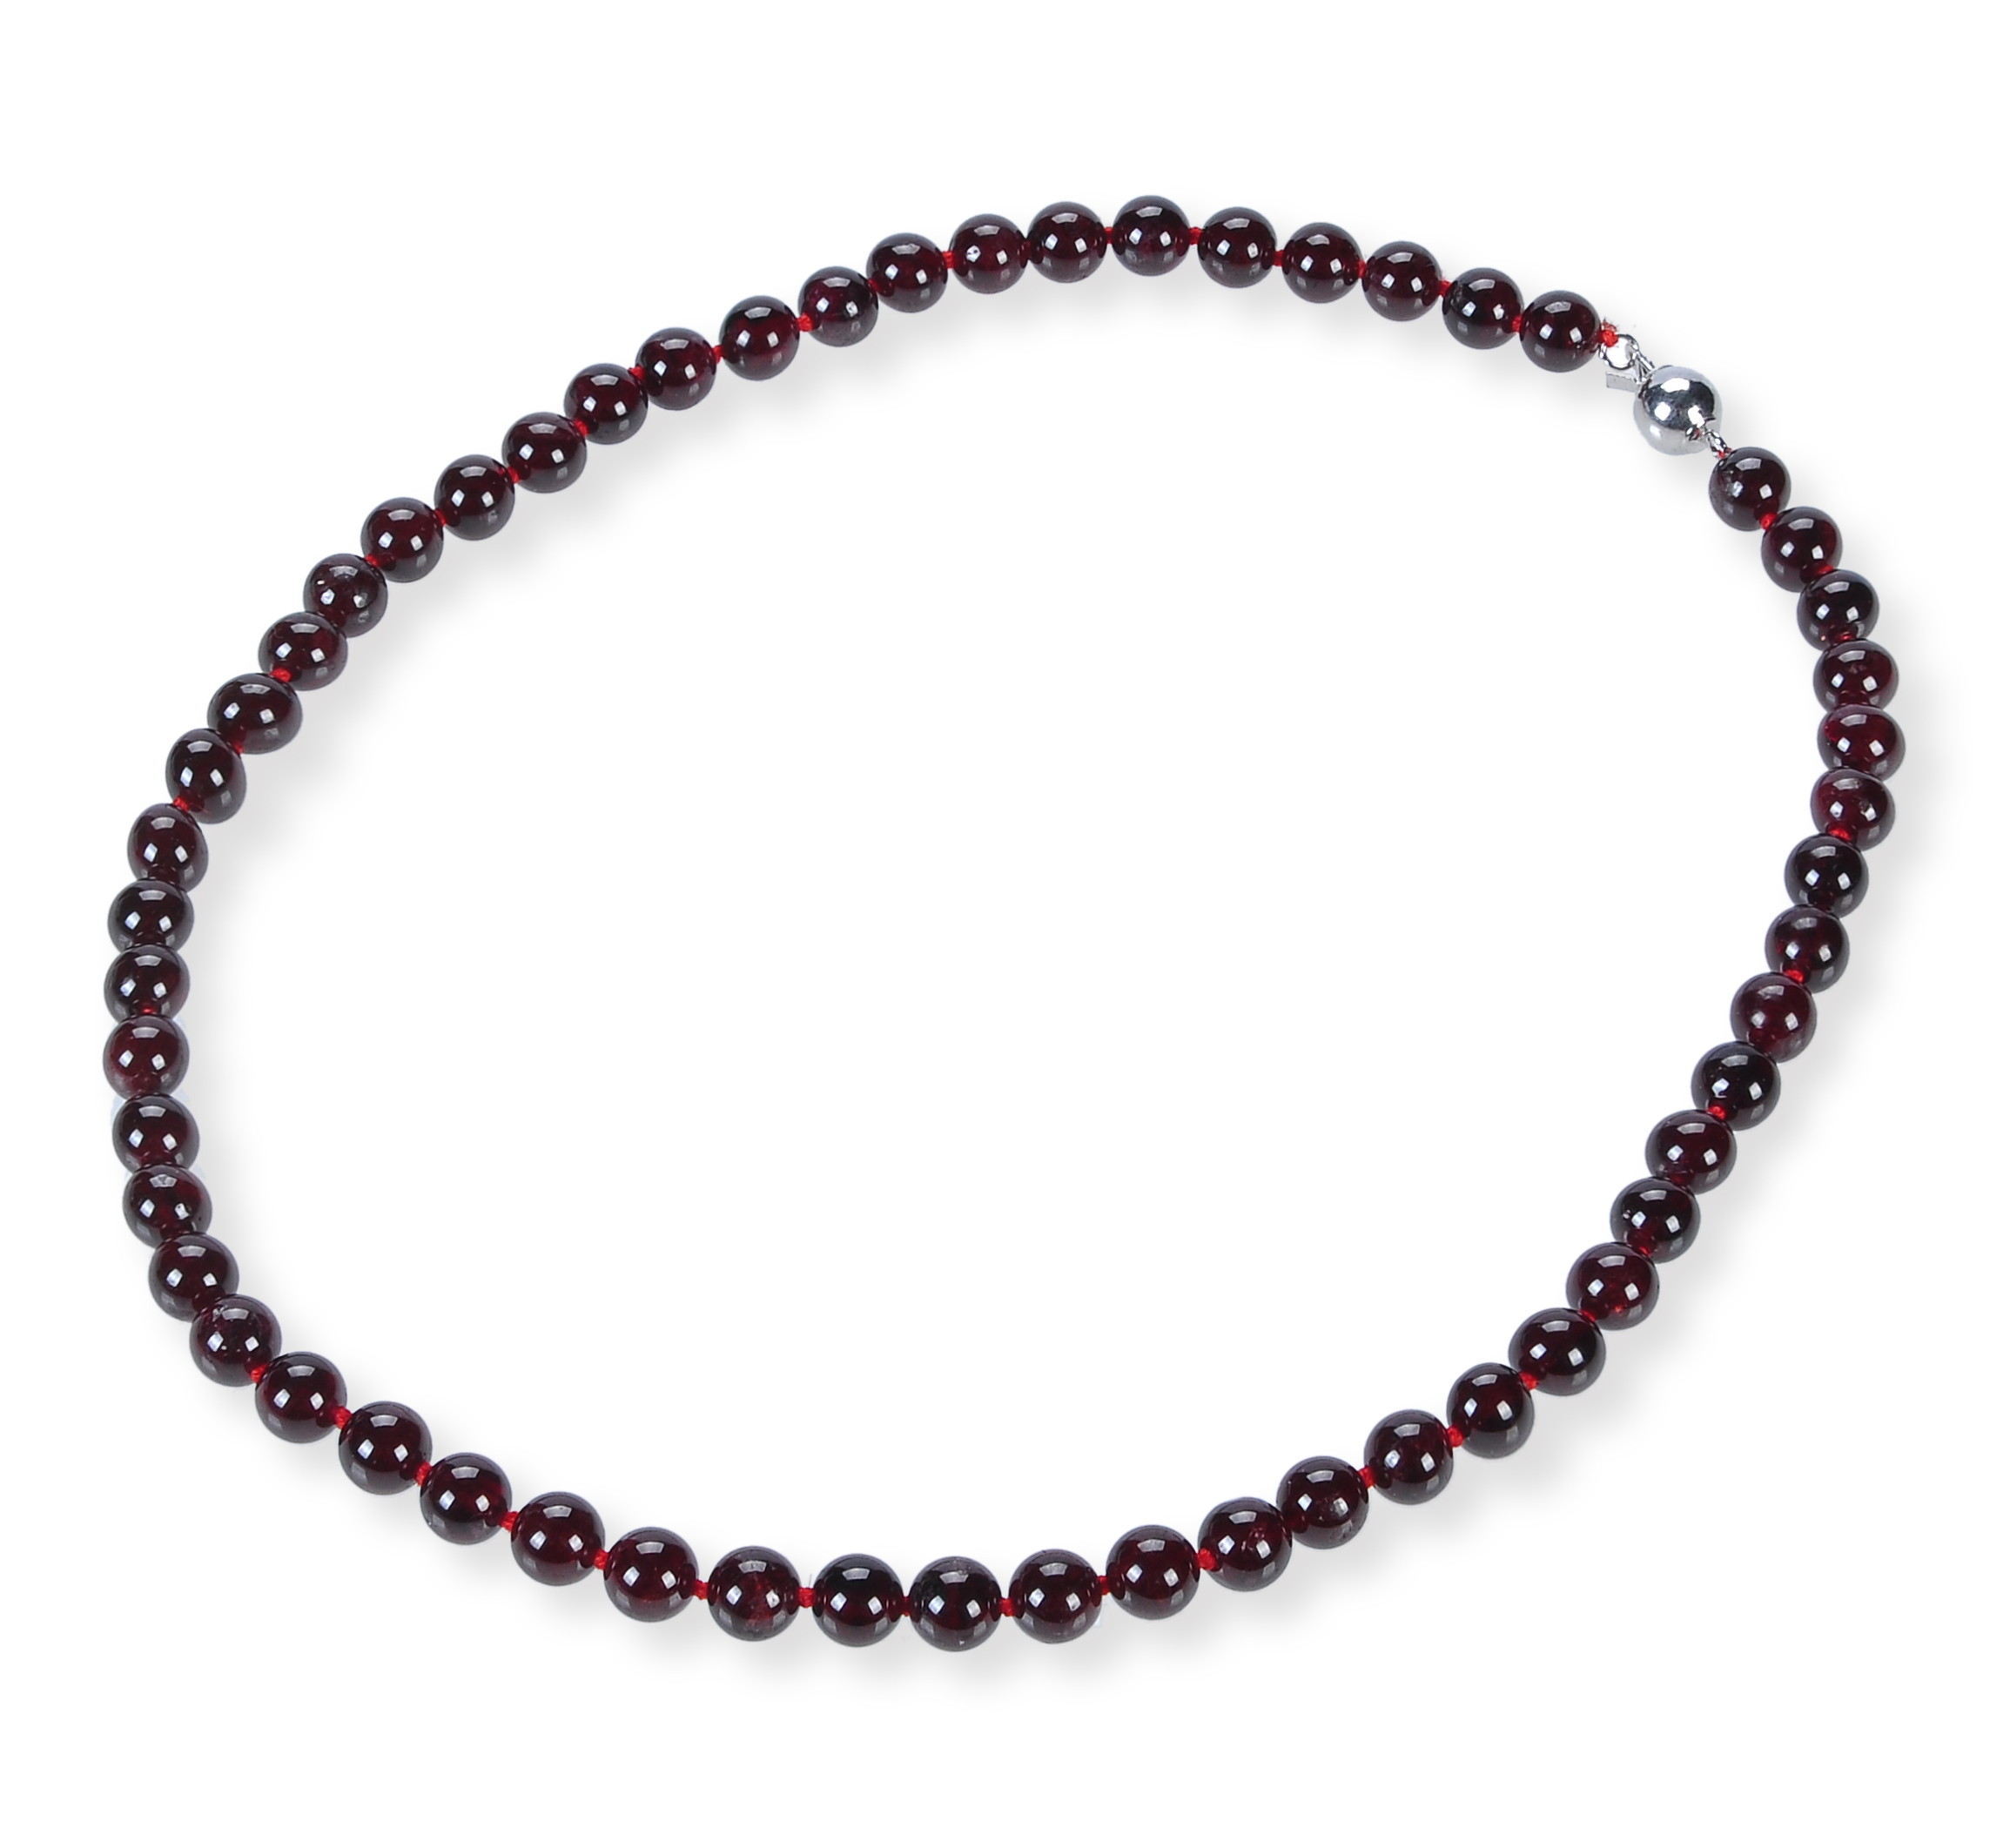 7.5 mm Round Garnet Strand Necklace -nk-gn2